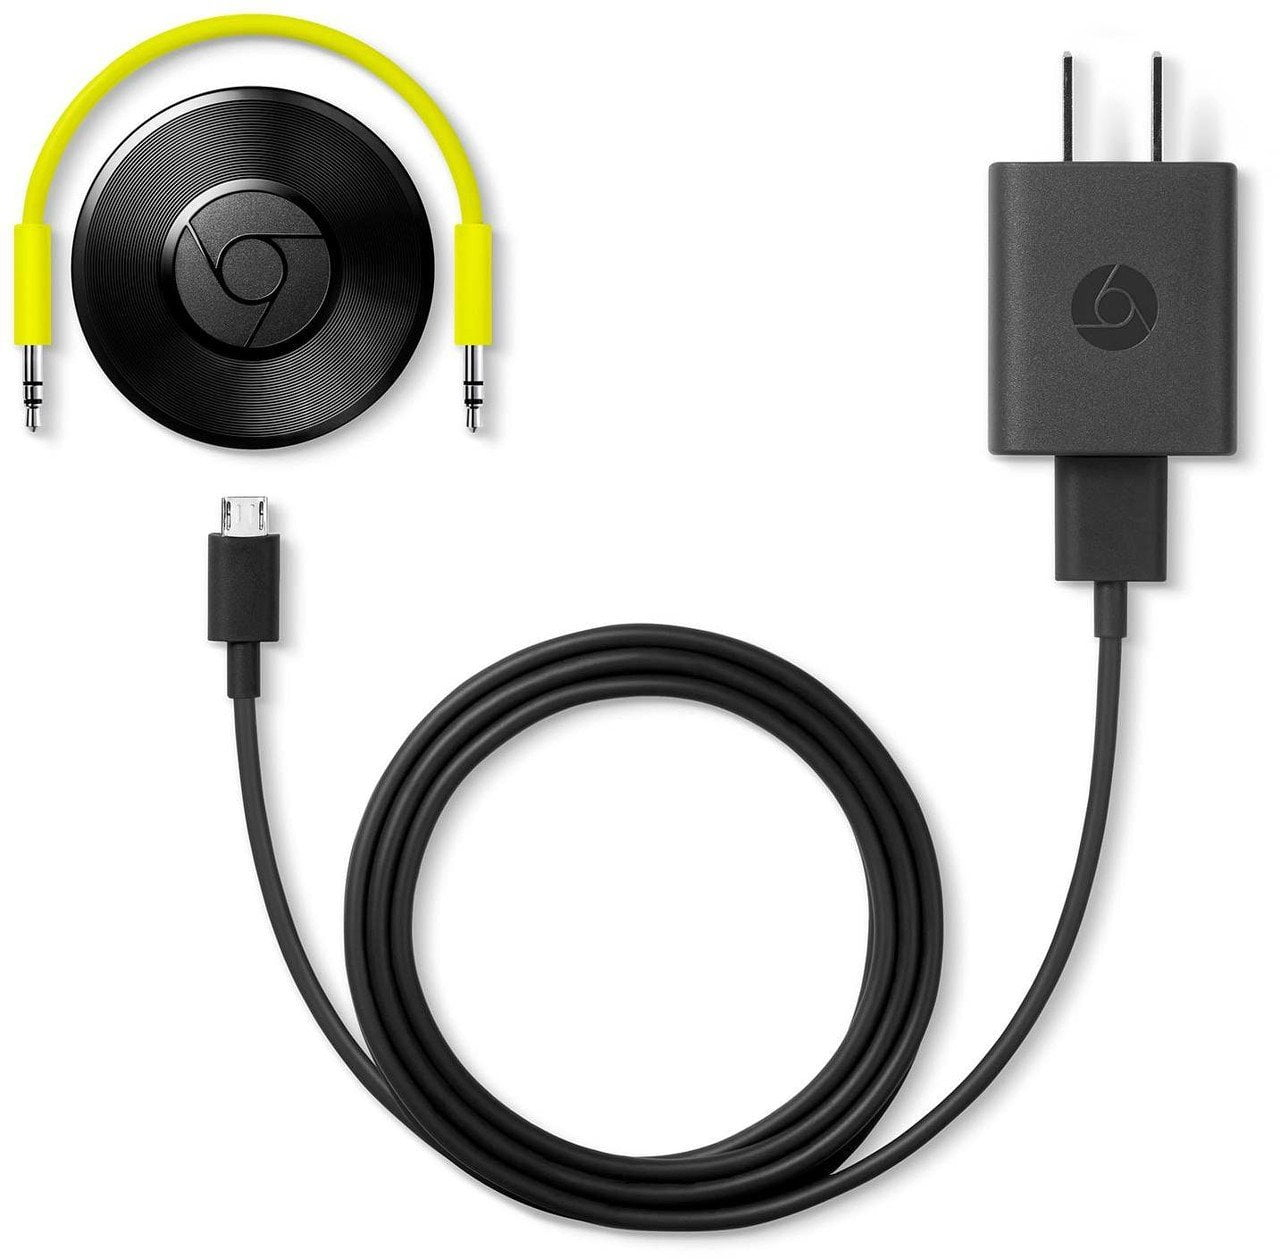 google-chromecast-audio-4